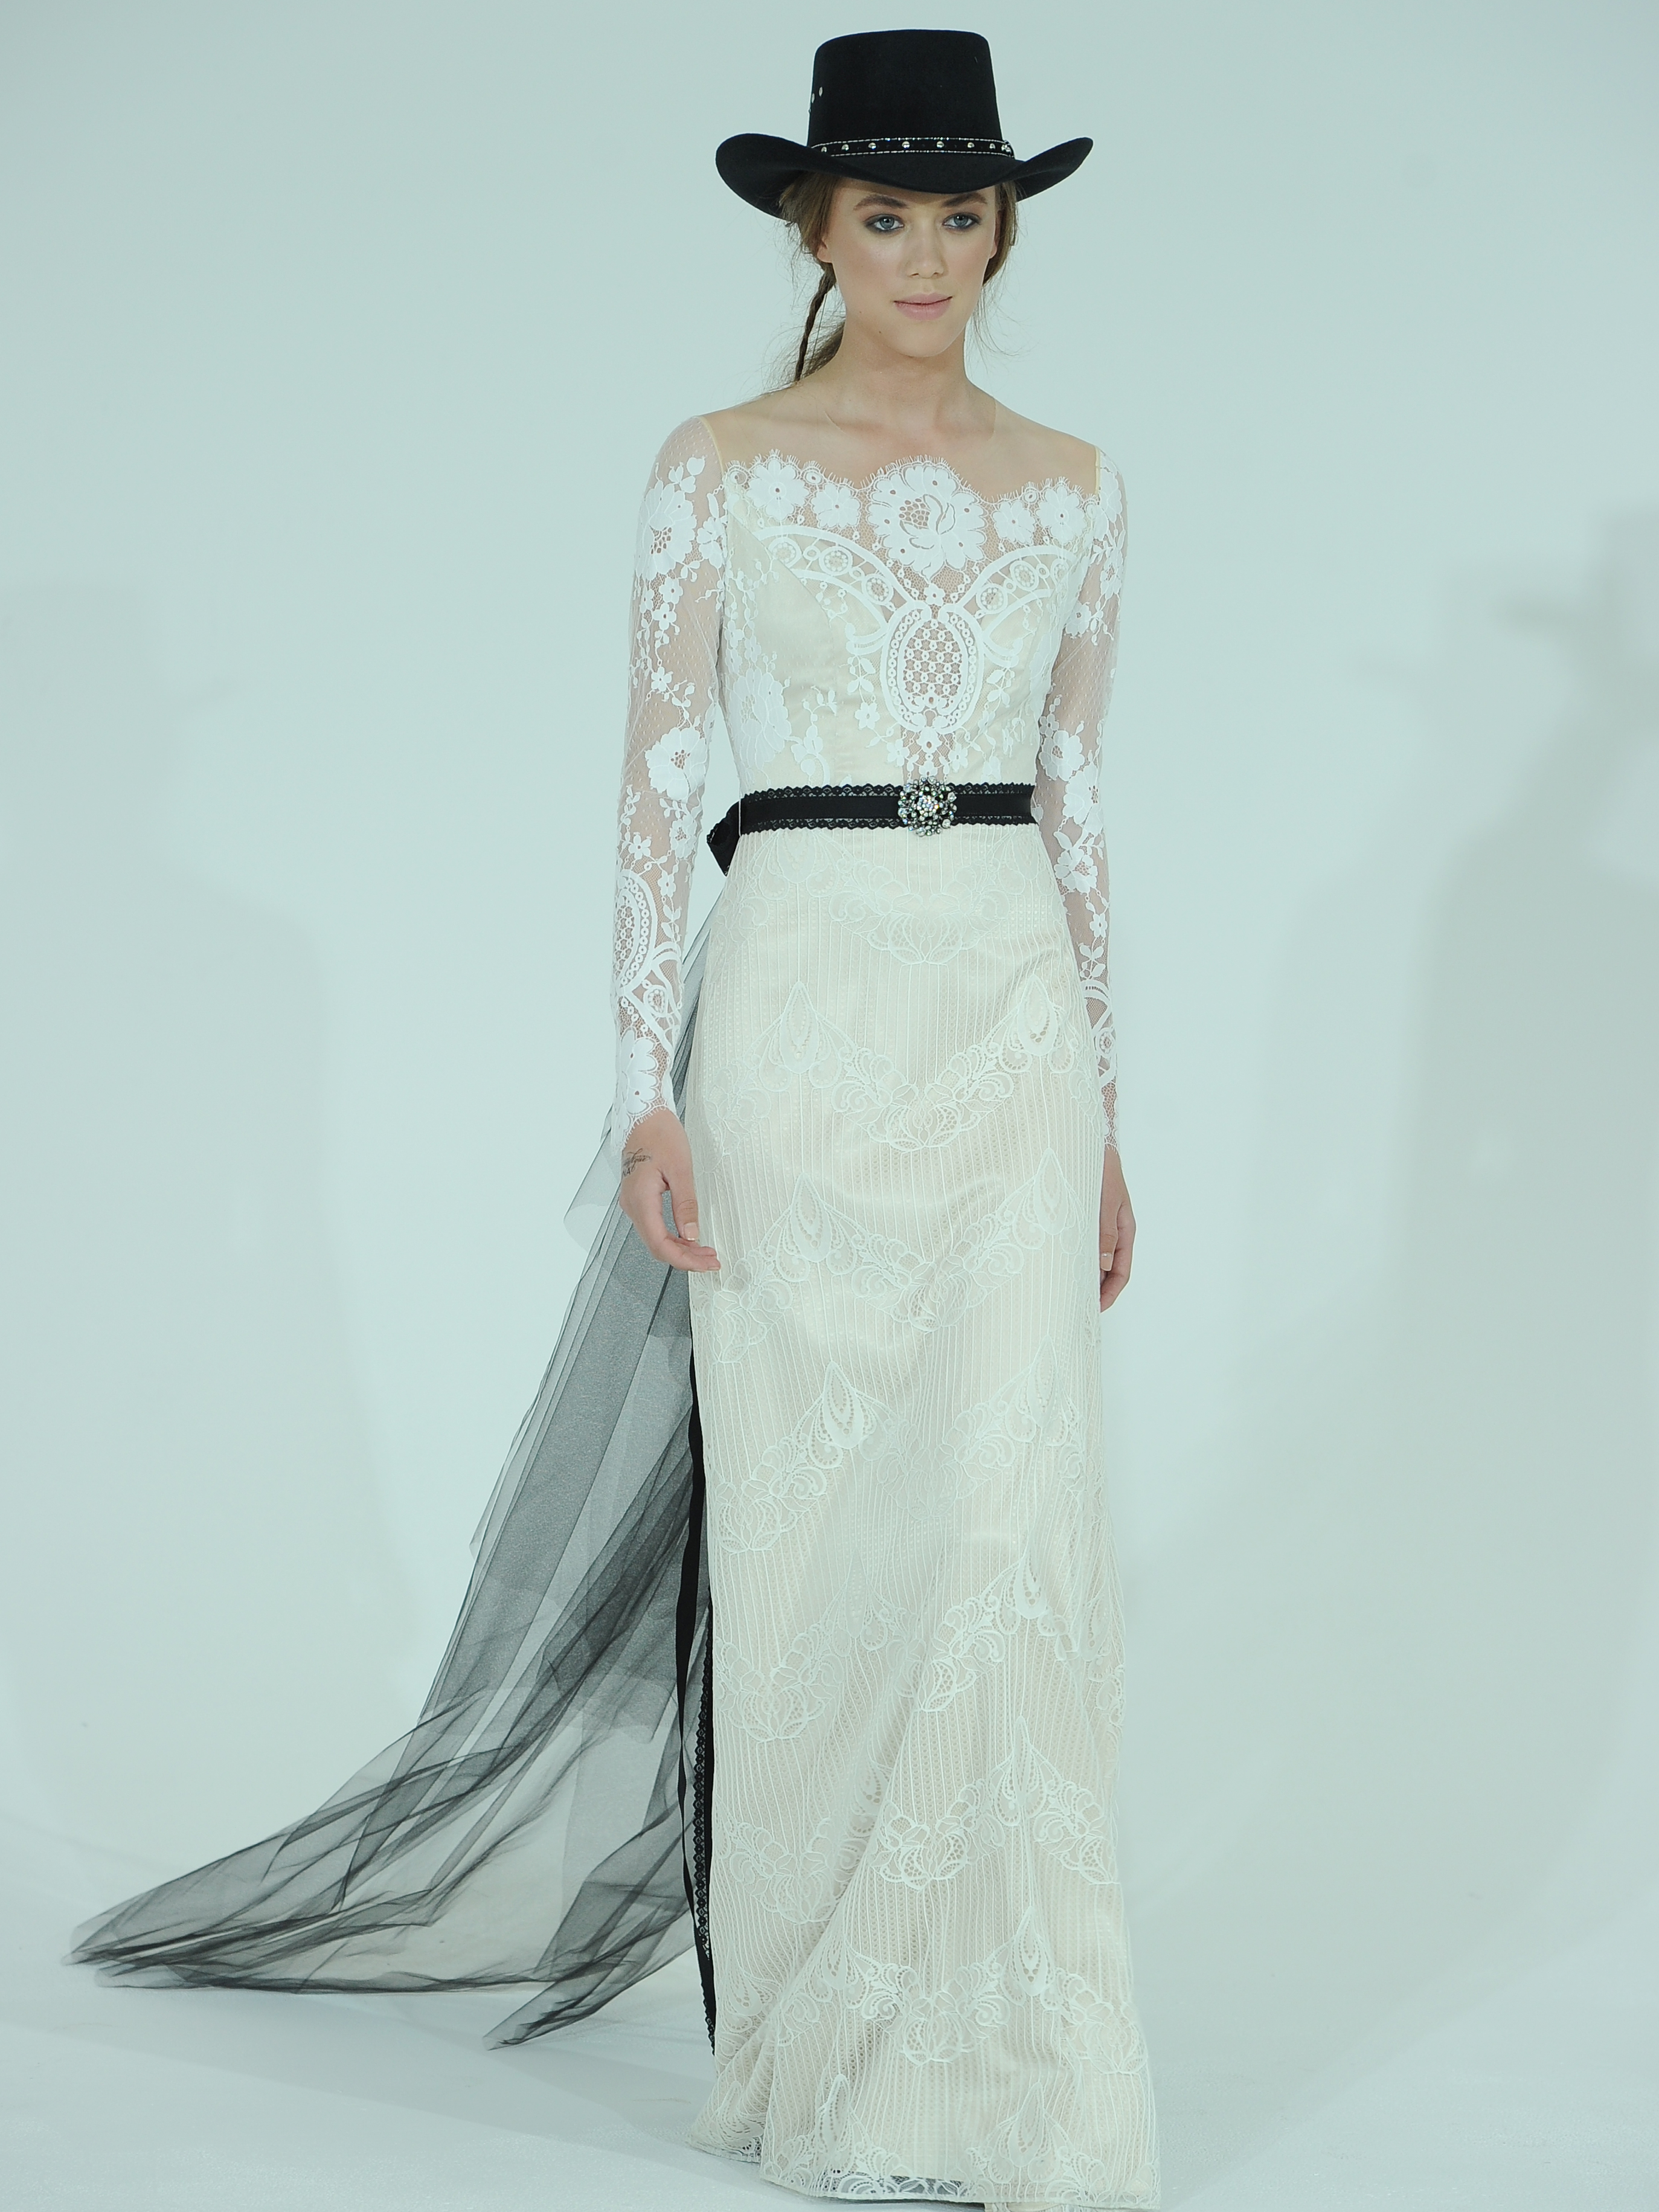 Claire Pettibone s Spring Wedding Dresses Take Us Back to